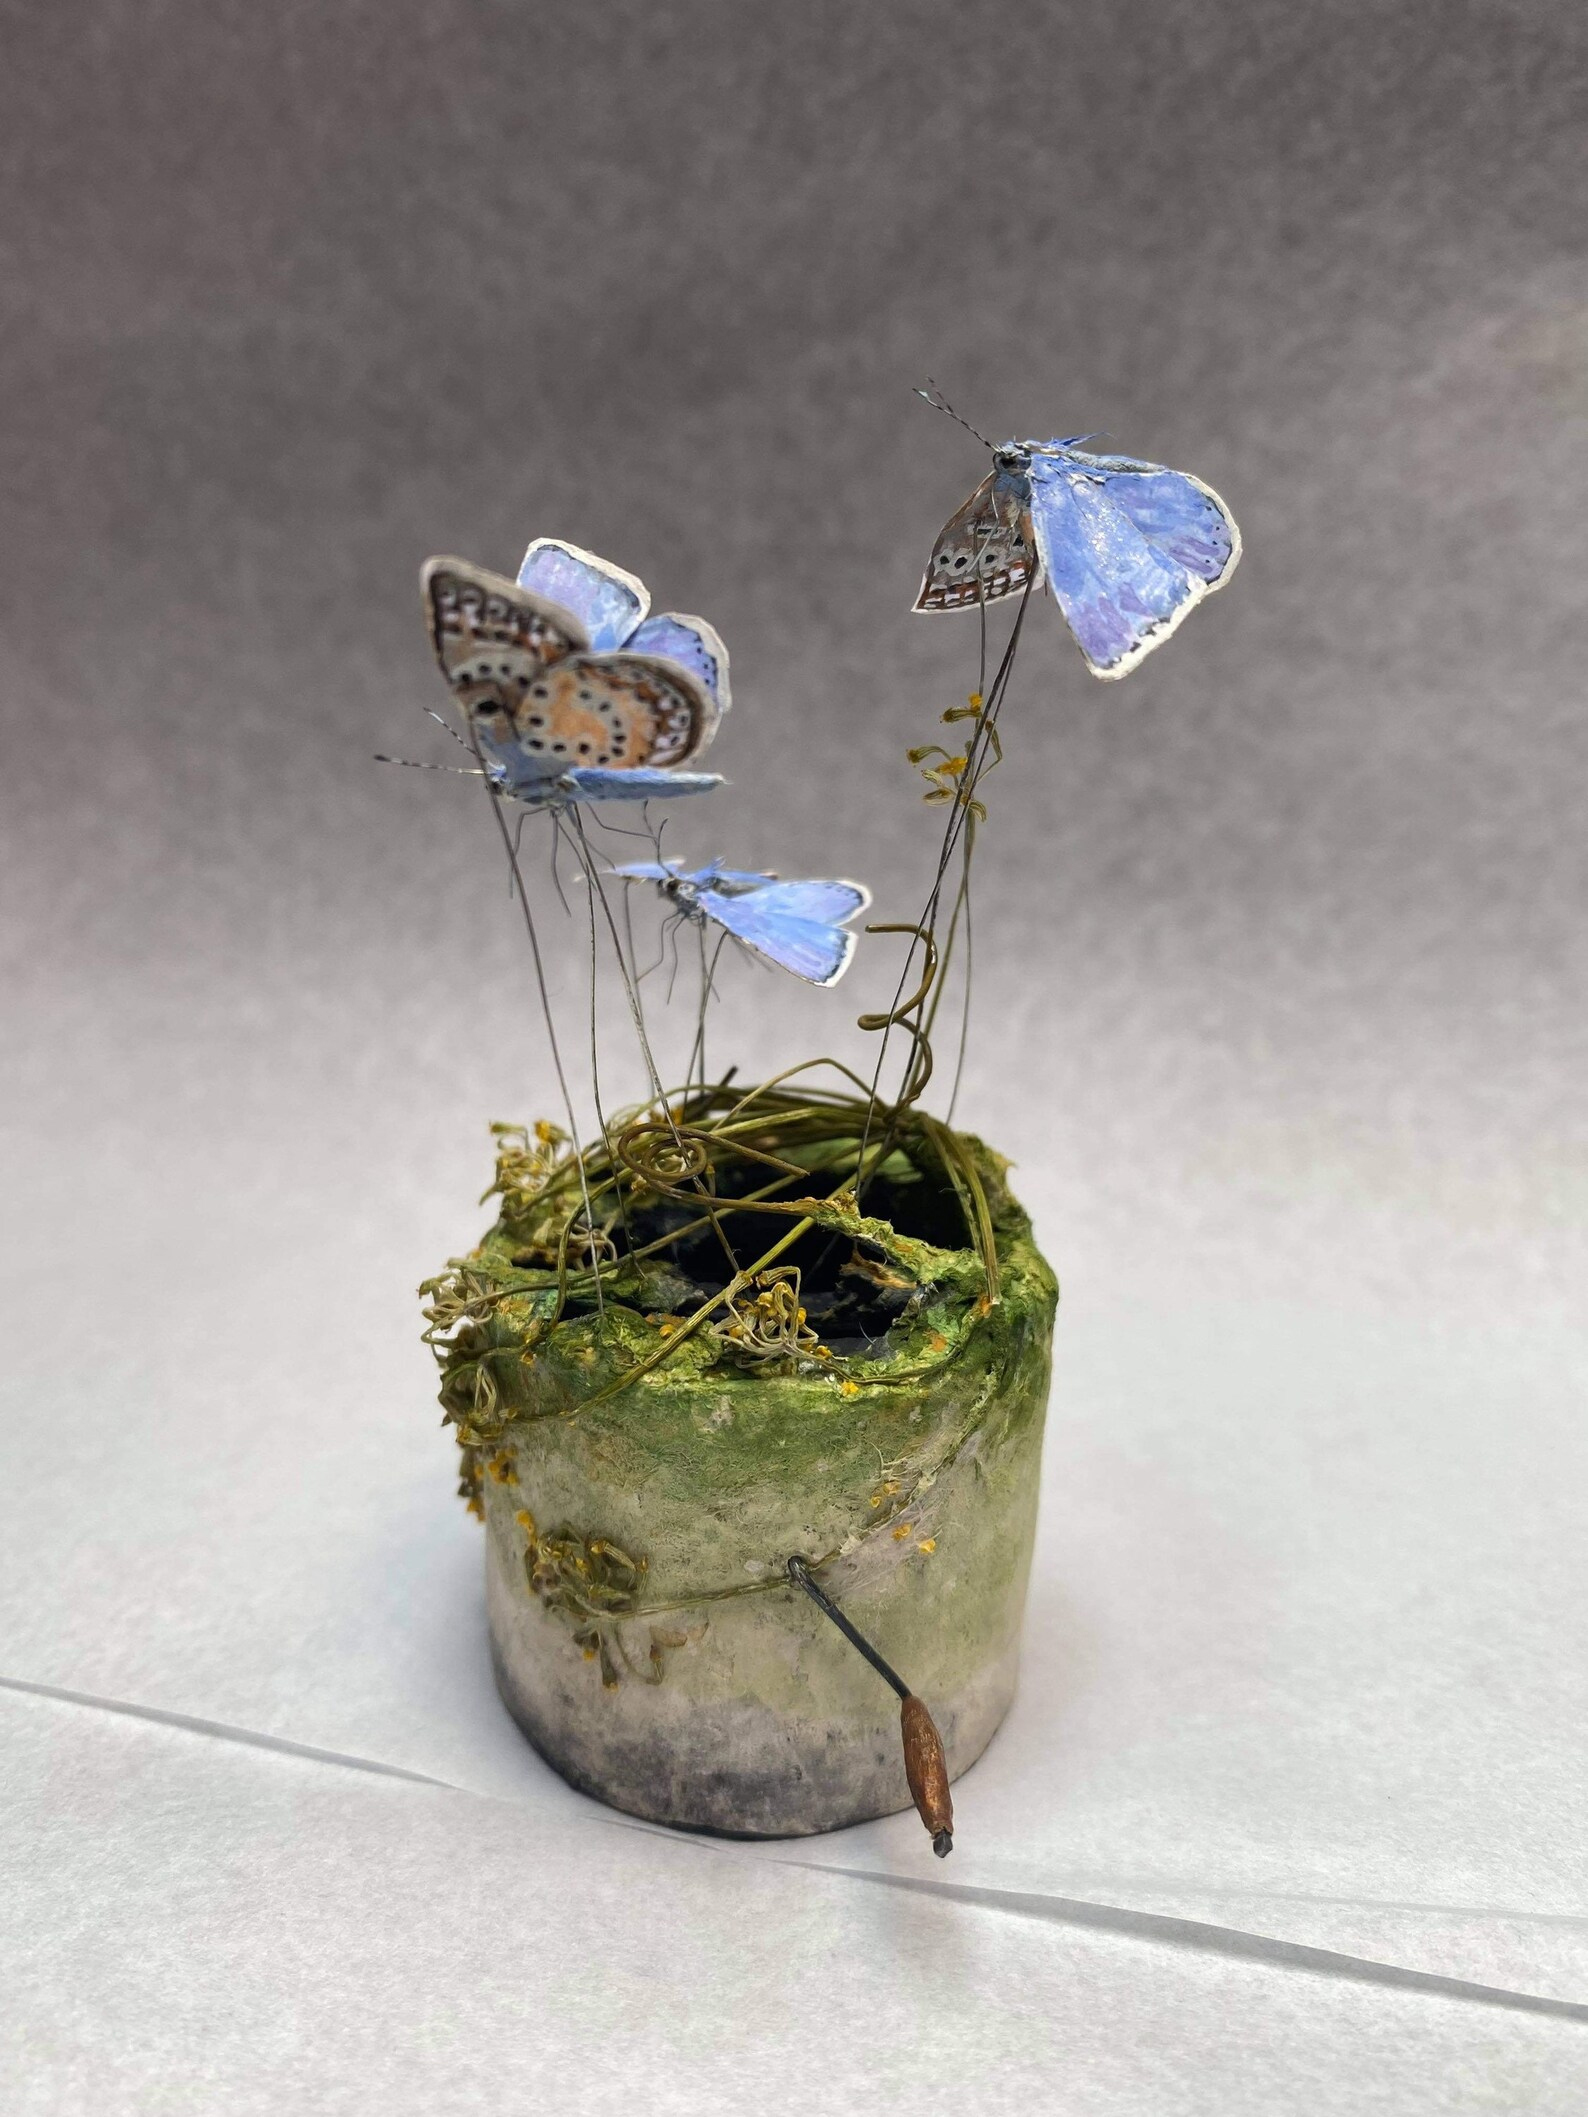 creatures-fly-and-swim-through-lush-ecosystems-in-kinetic-miniatures-by-penny-thomson